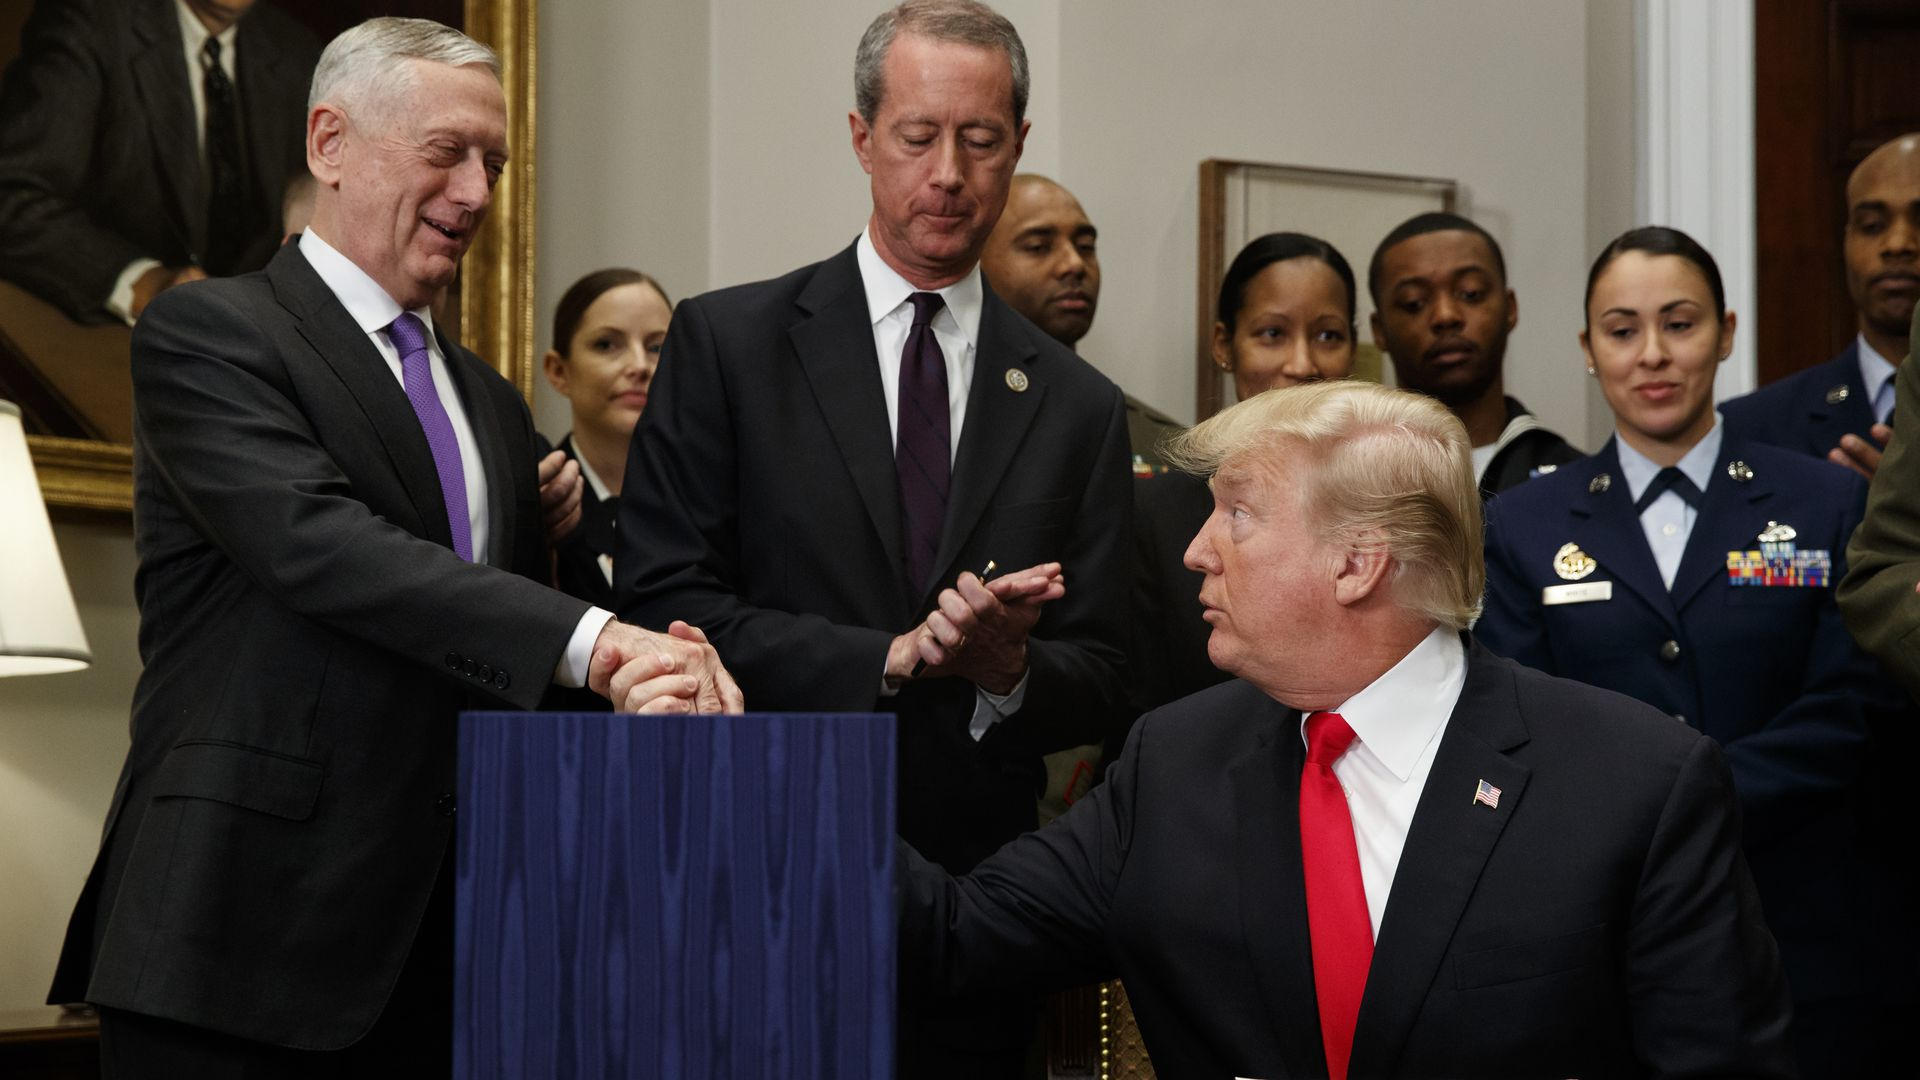 President Donald Trump shakes hands with Secretary of Defense Jim Mattis after signing the National Defense Authorization Act for Fiscal Year 2018.